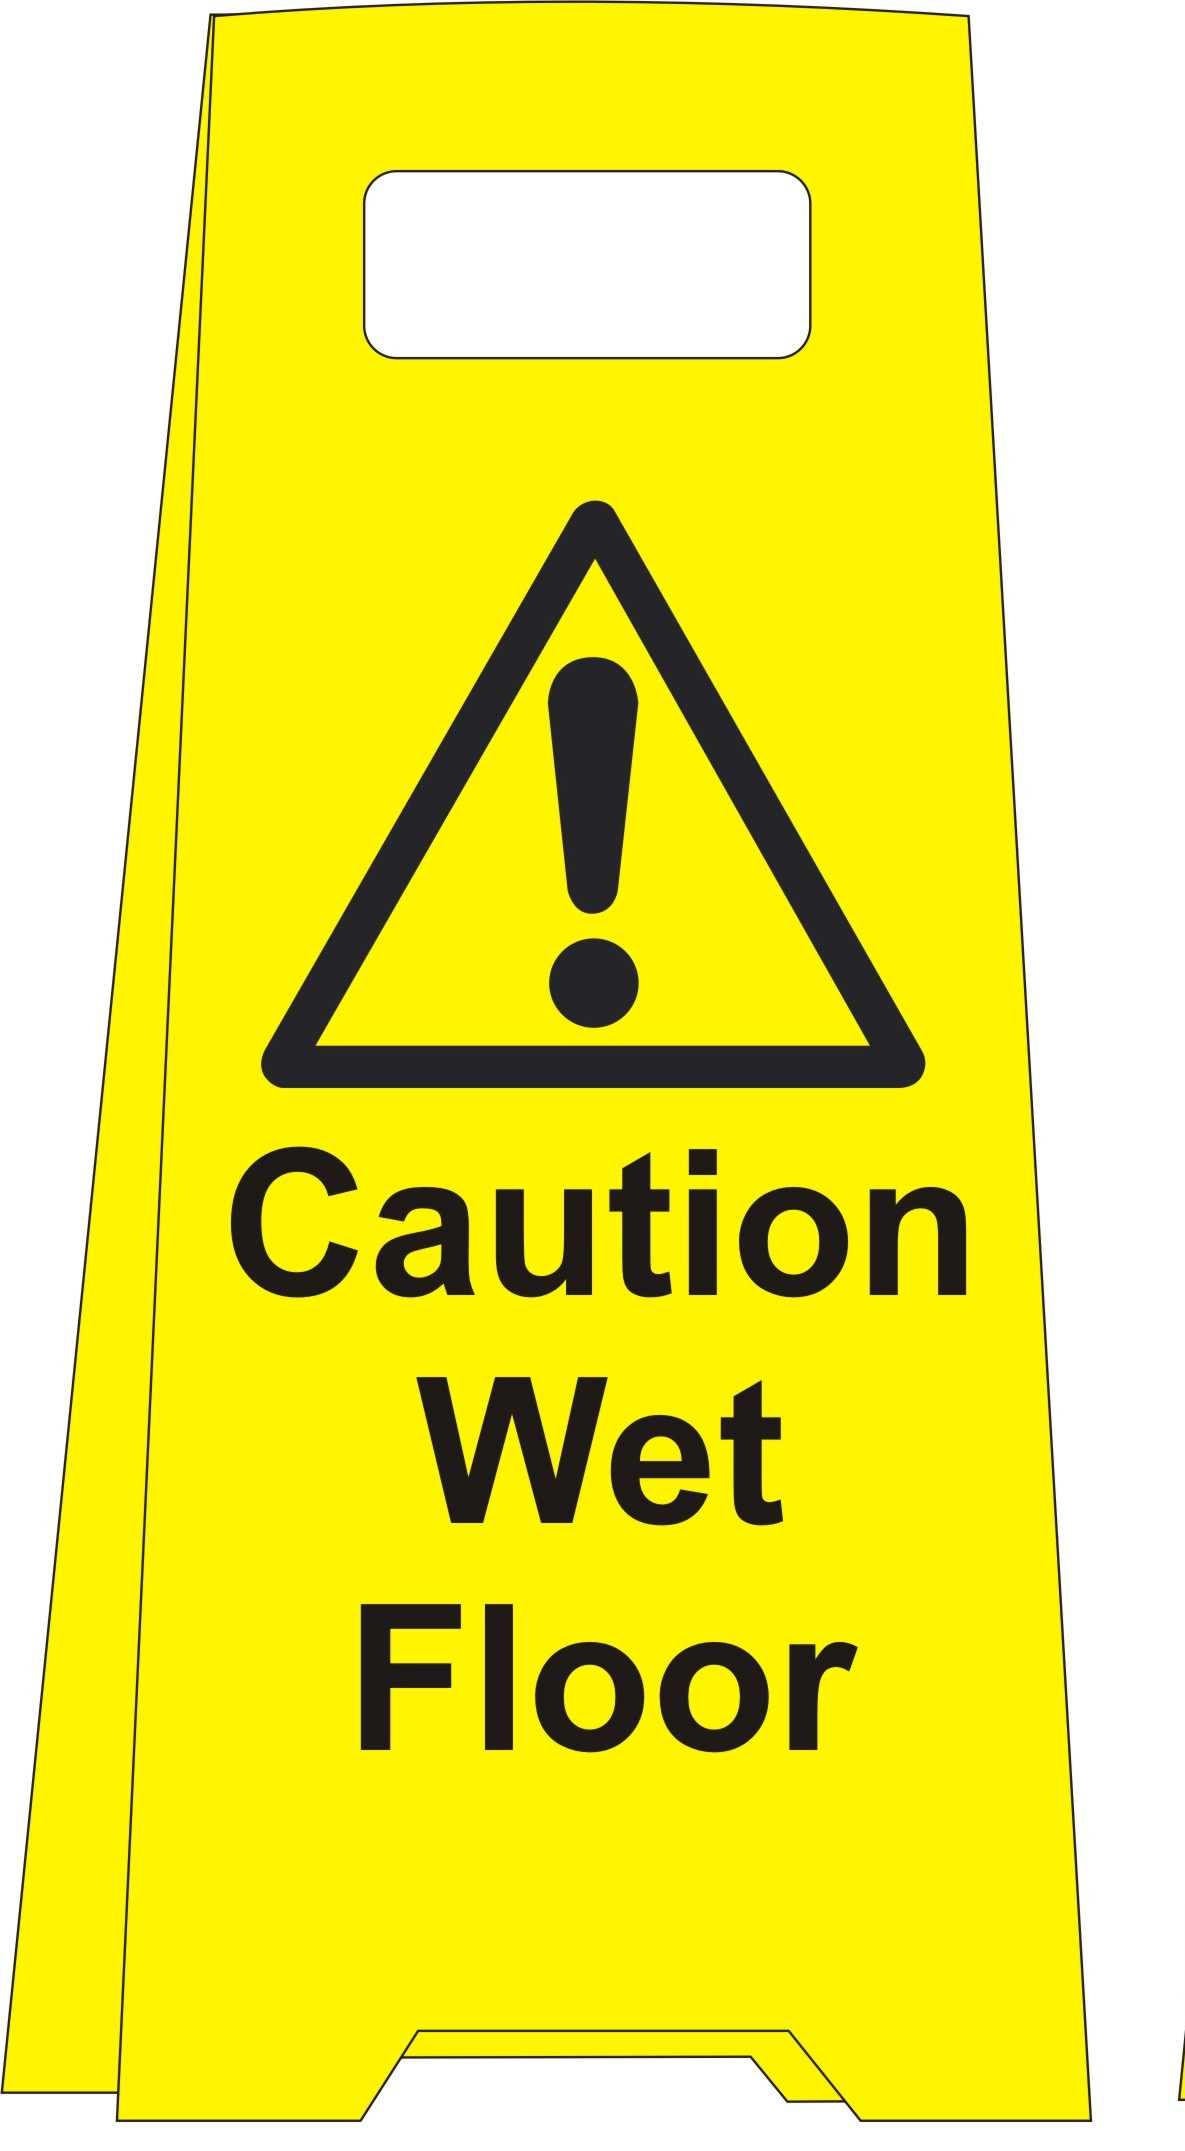 Caution Wet Floor Floor standing sign